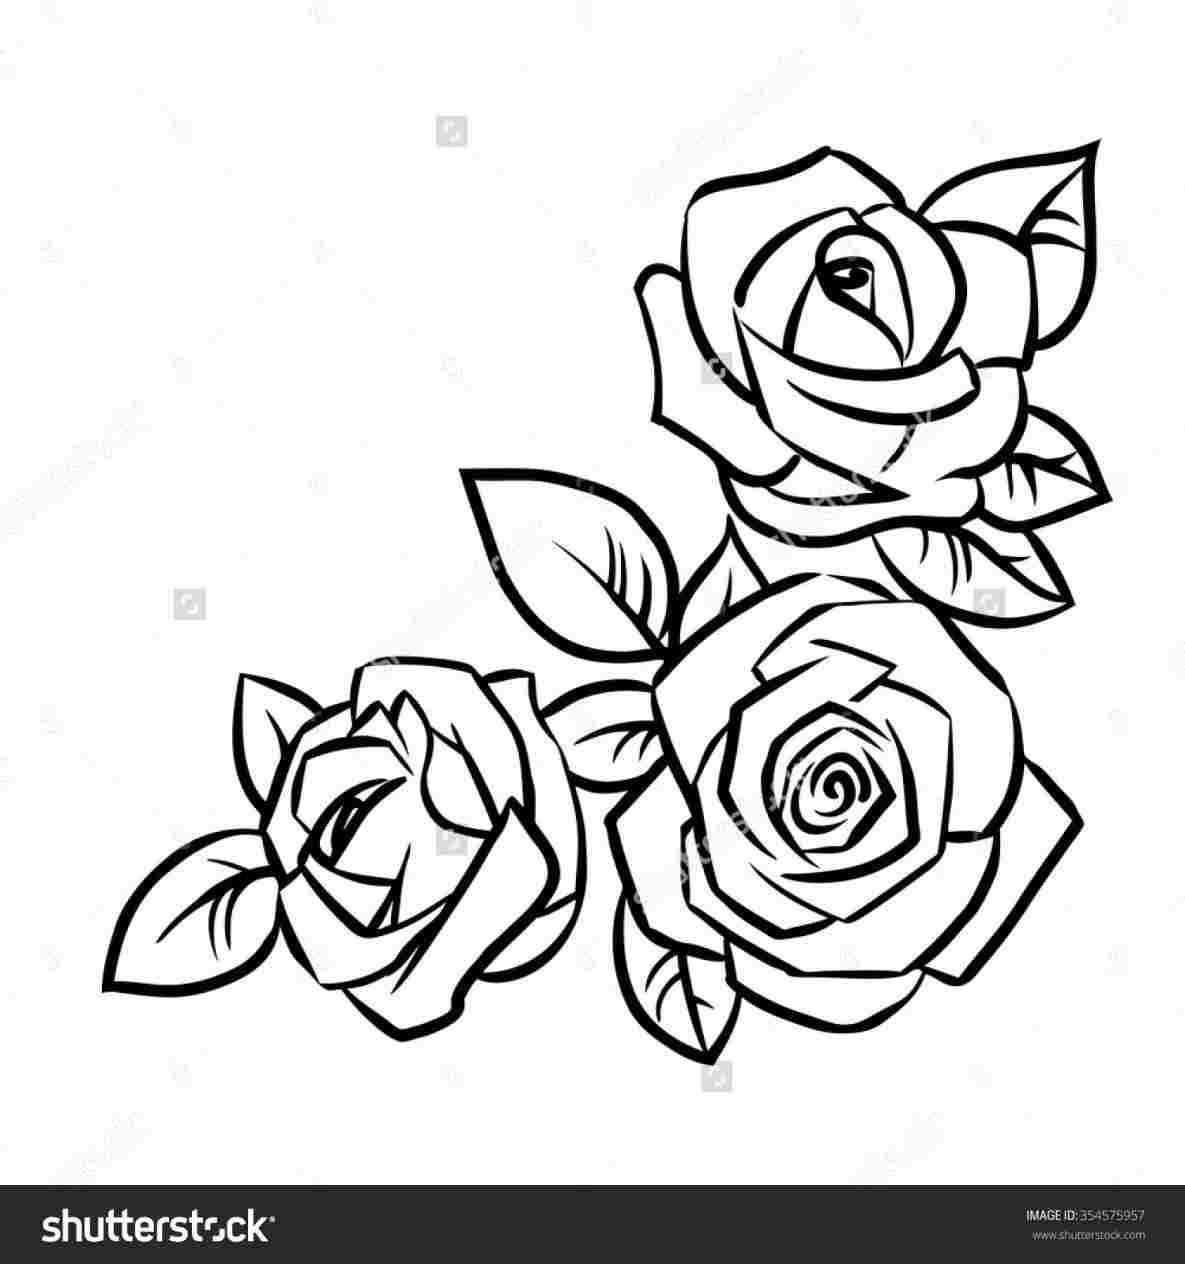 1185x1264 Cool Rose Drawings In Black And White